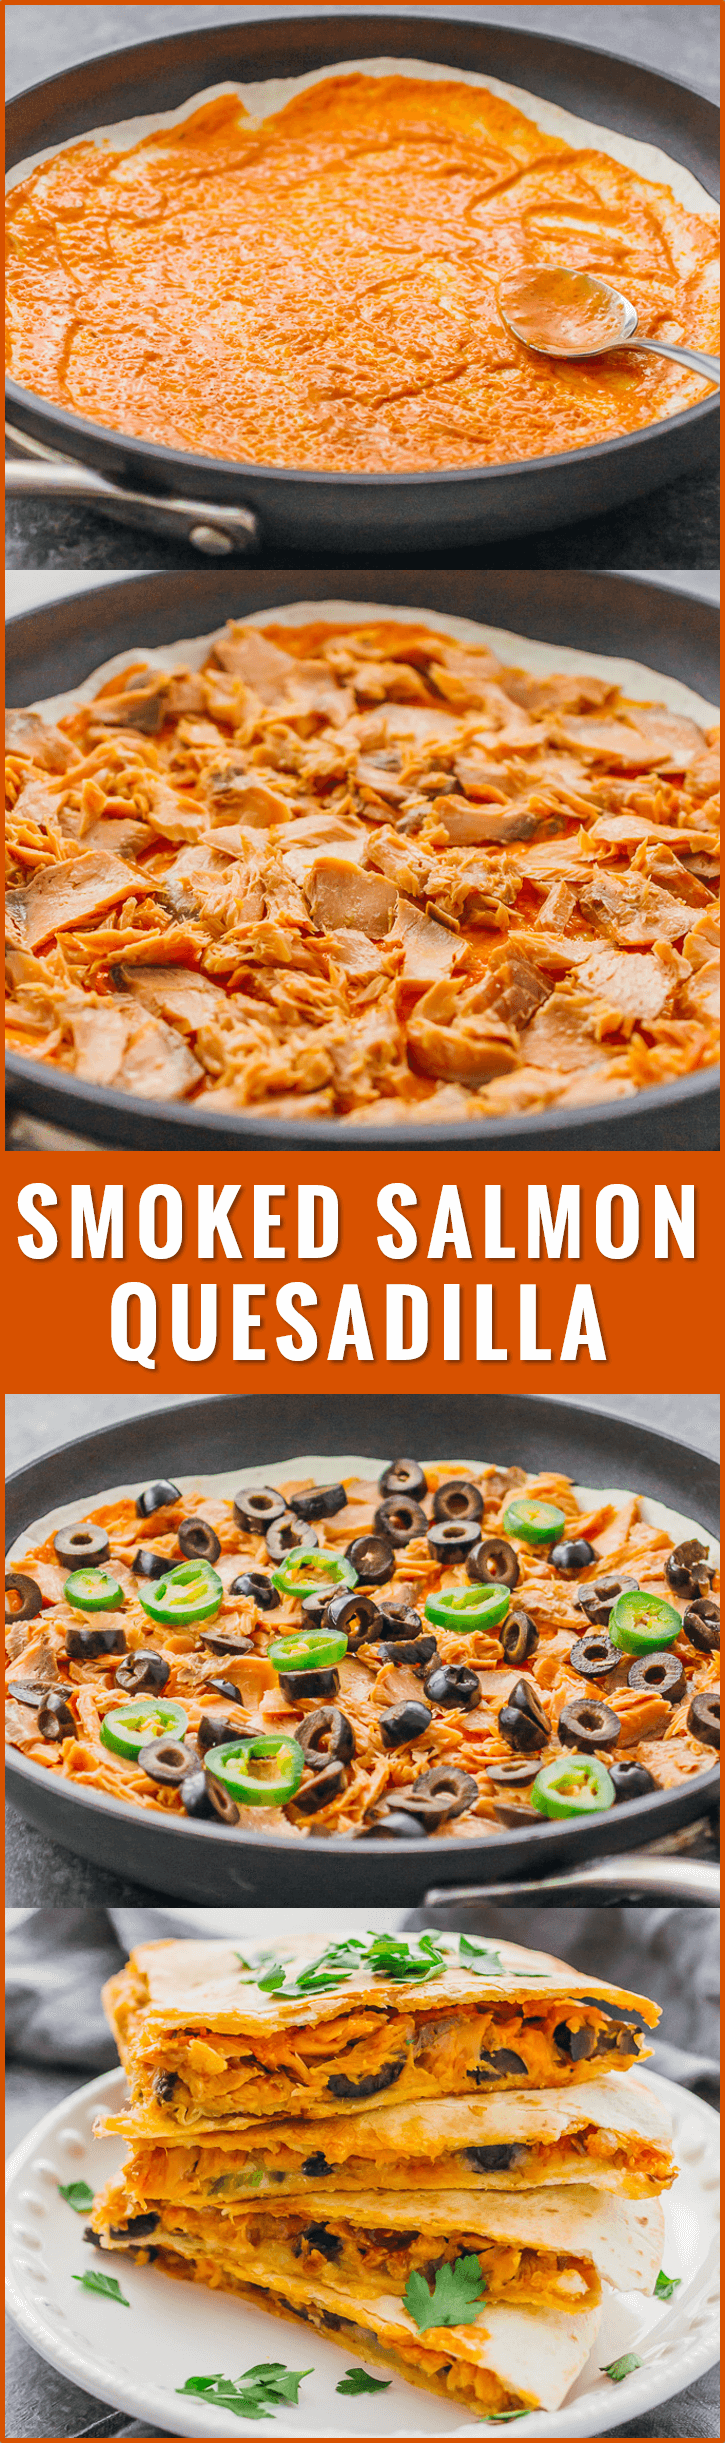 Calling all spicy food lovers: this quesadilla is filled with smoked salmon, black olives, jalapeños, pepper jack cheese, and a garlic-sriracha mayo sauce. recipes, healthy, avocado, canned, fish tacos, black beans, cream cheese, dinners, sauces, gluten free